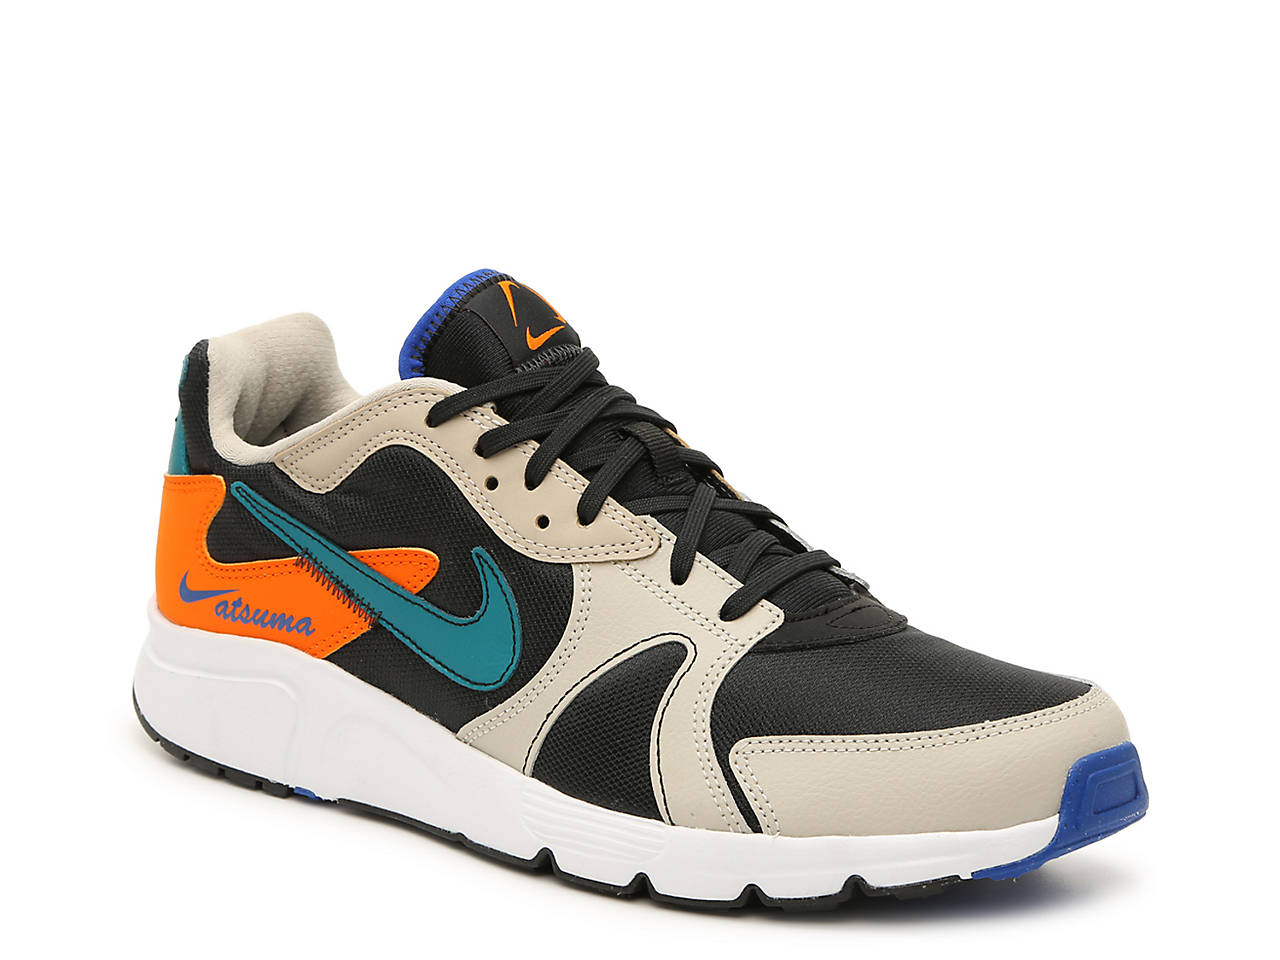 Nike Atsuma Sneaker Men's Men's Shoes | DSW